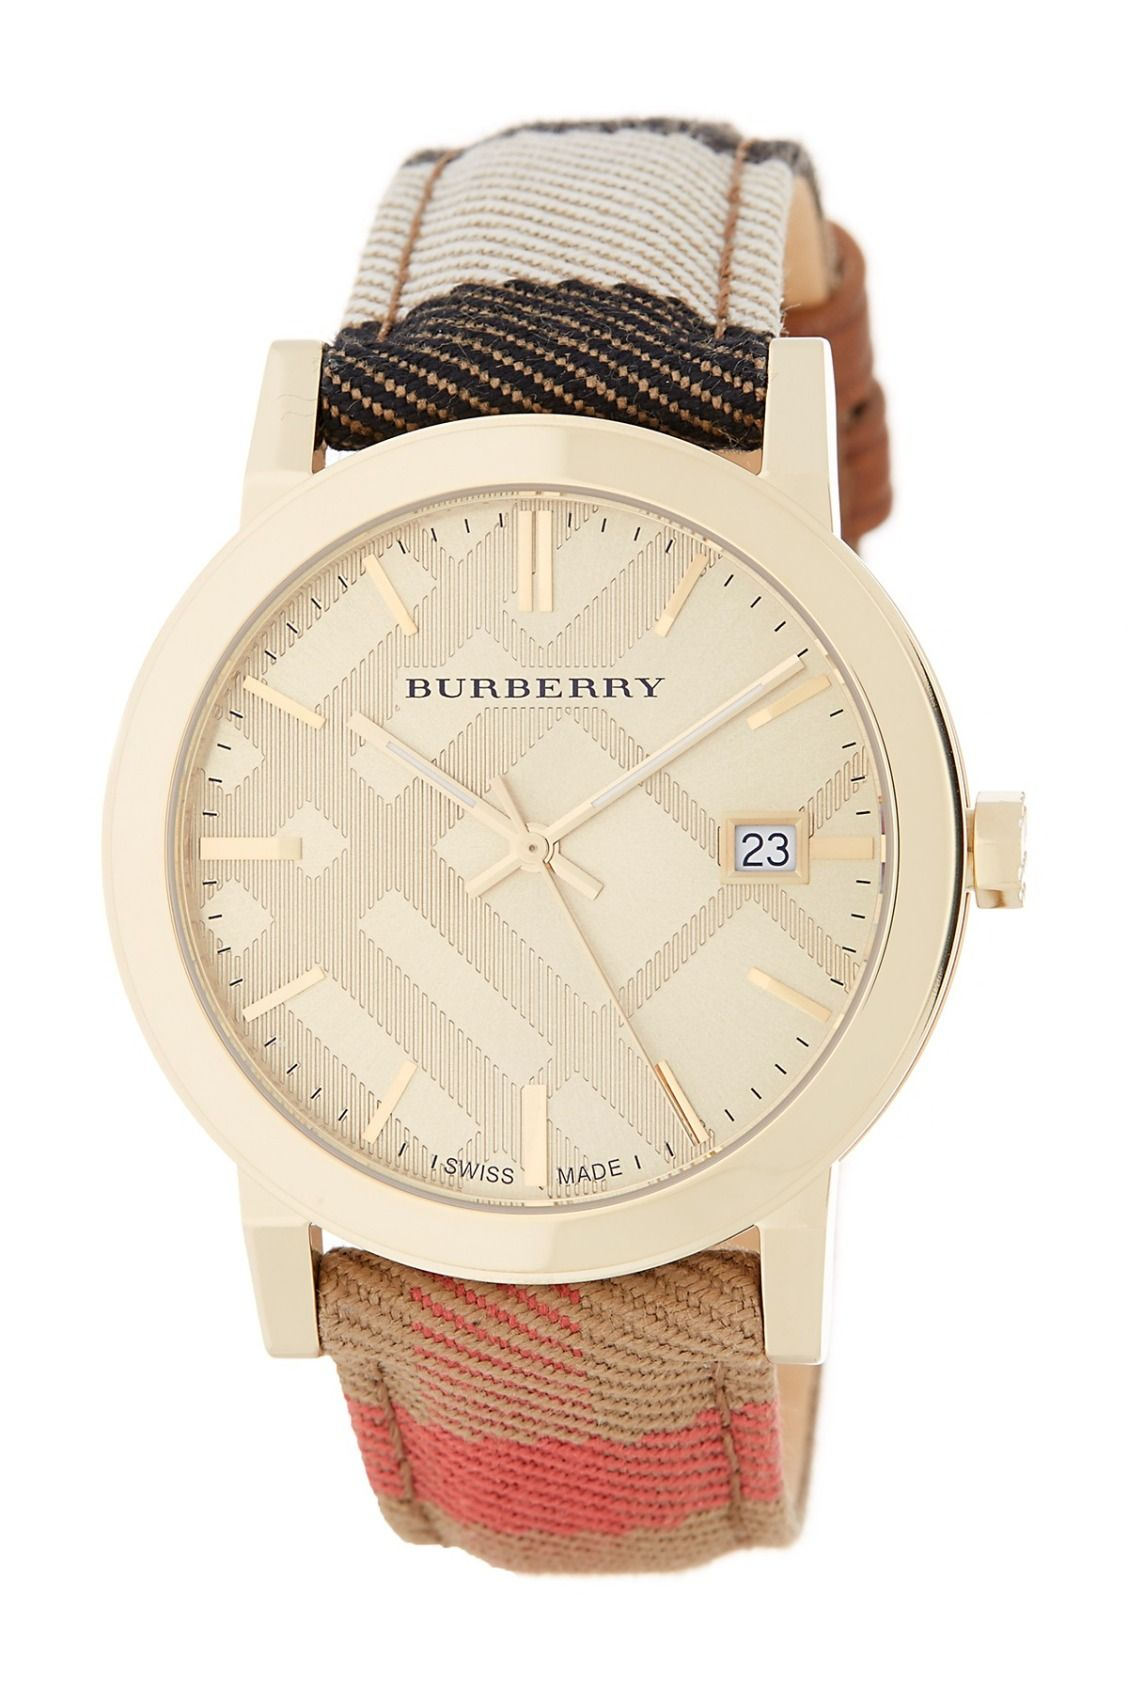 2a46bf7d308a An iconic watch for that special someone.